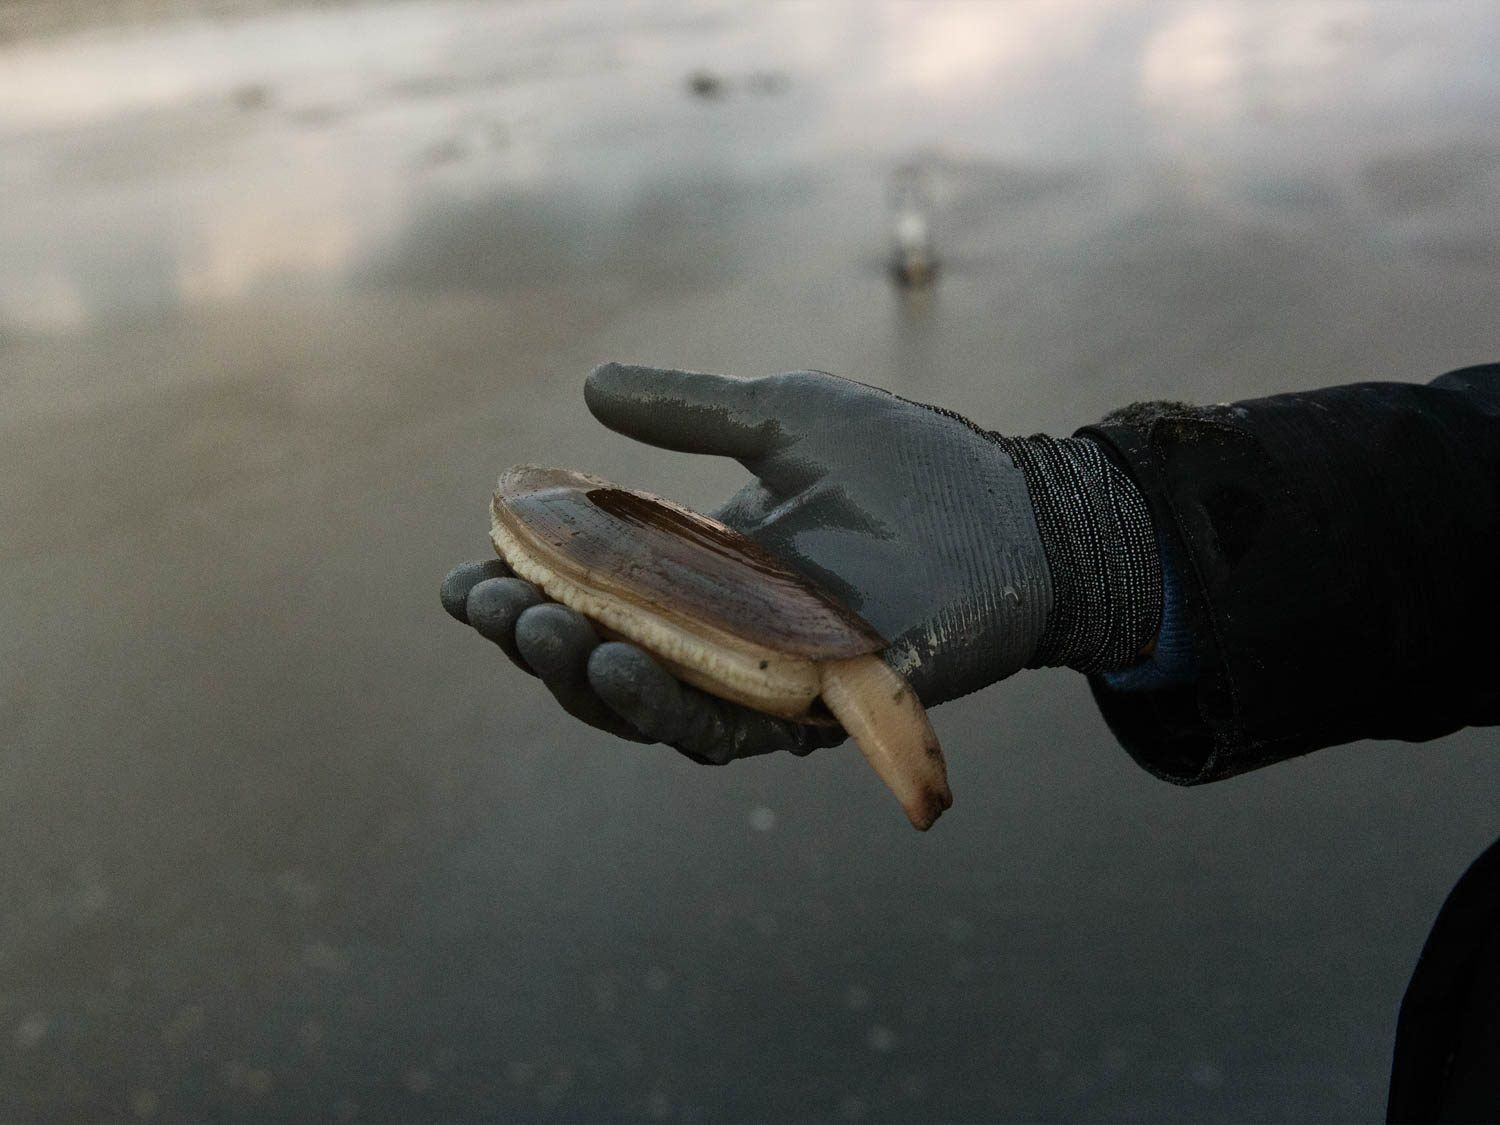 A gloved hand holding a Pacific razor clam, with out-of-focus beach in the background